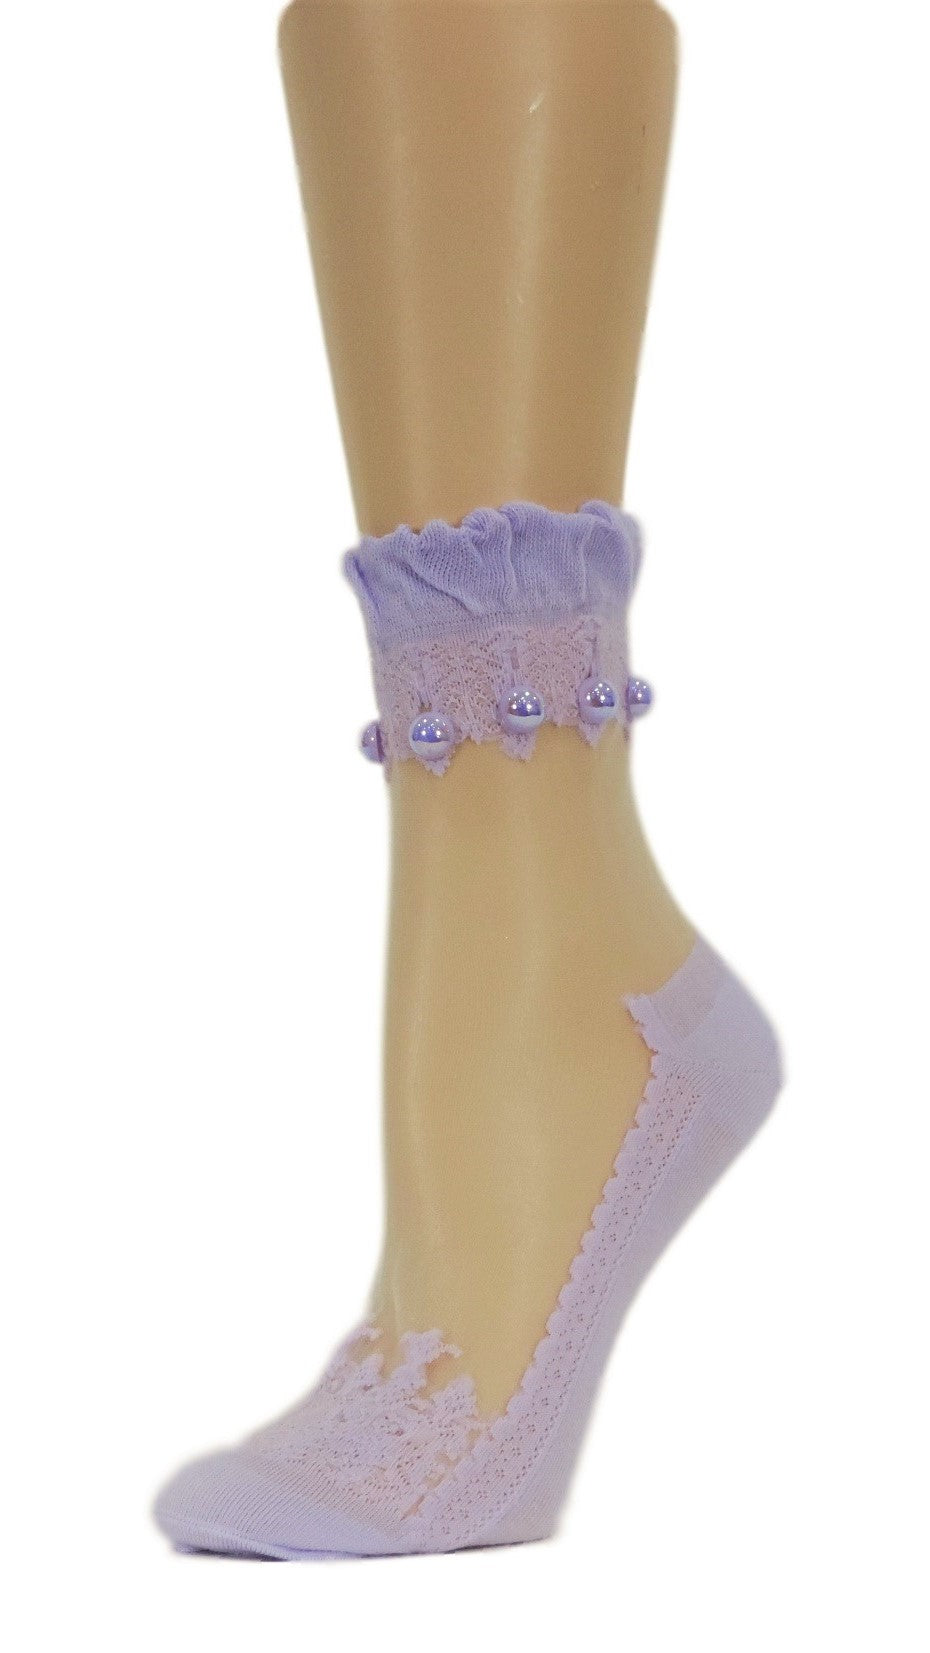 Elegant Purple Custom Sheer Socks with beads - Global Trendz Fashion®